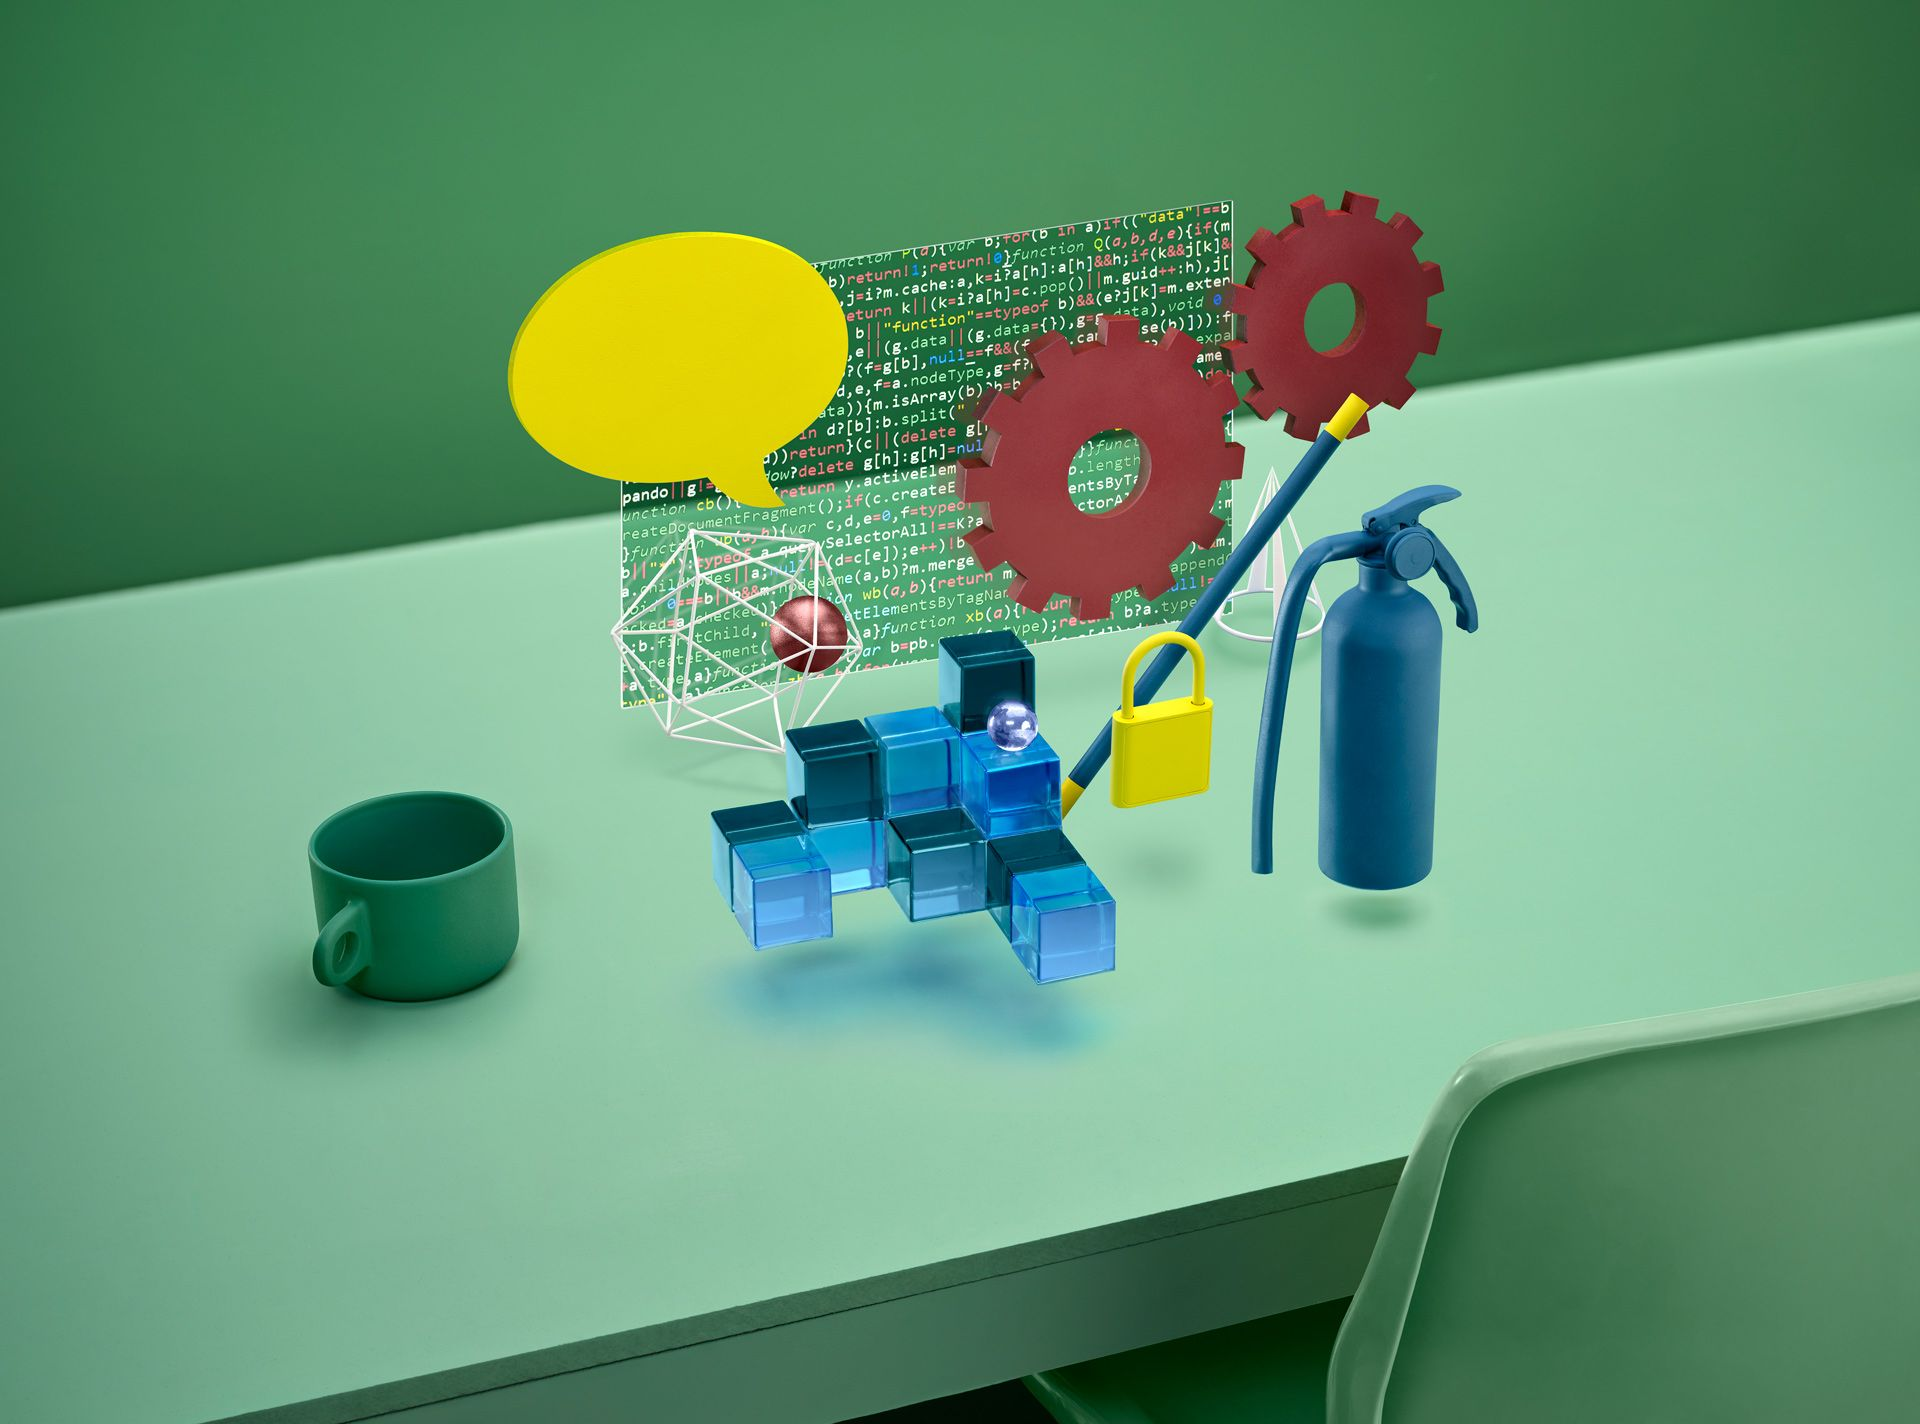 animation on green background about development and data entry by Mathieu Lévesque and Pascal Brousseau for GSoft